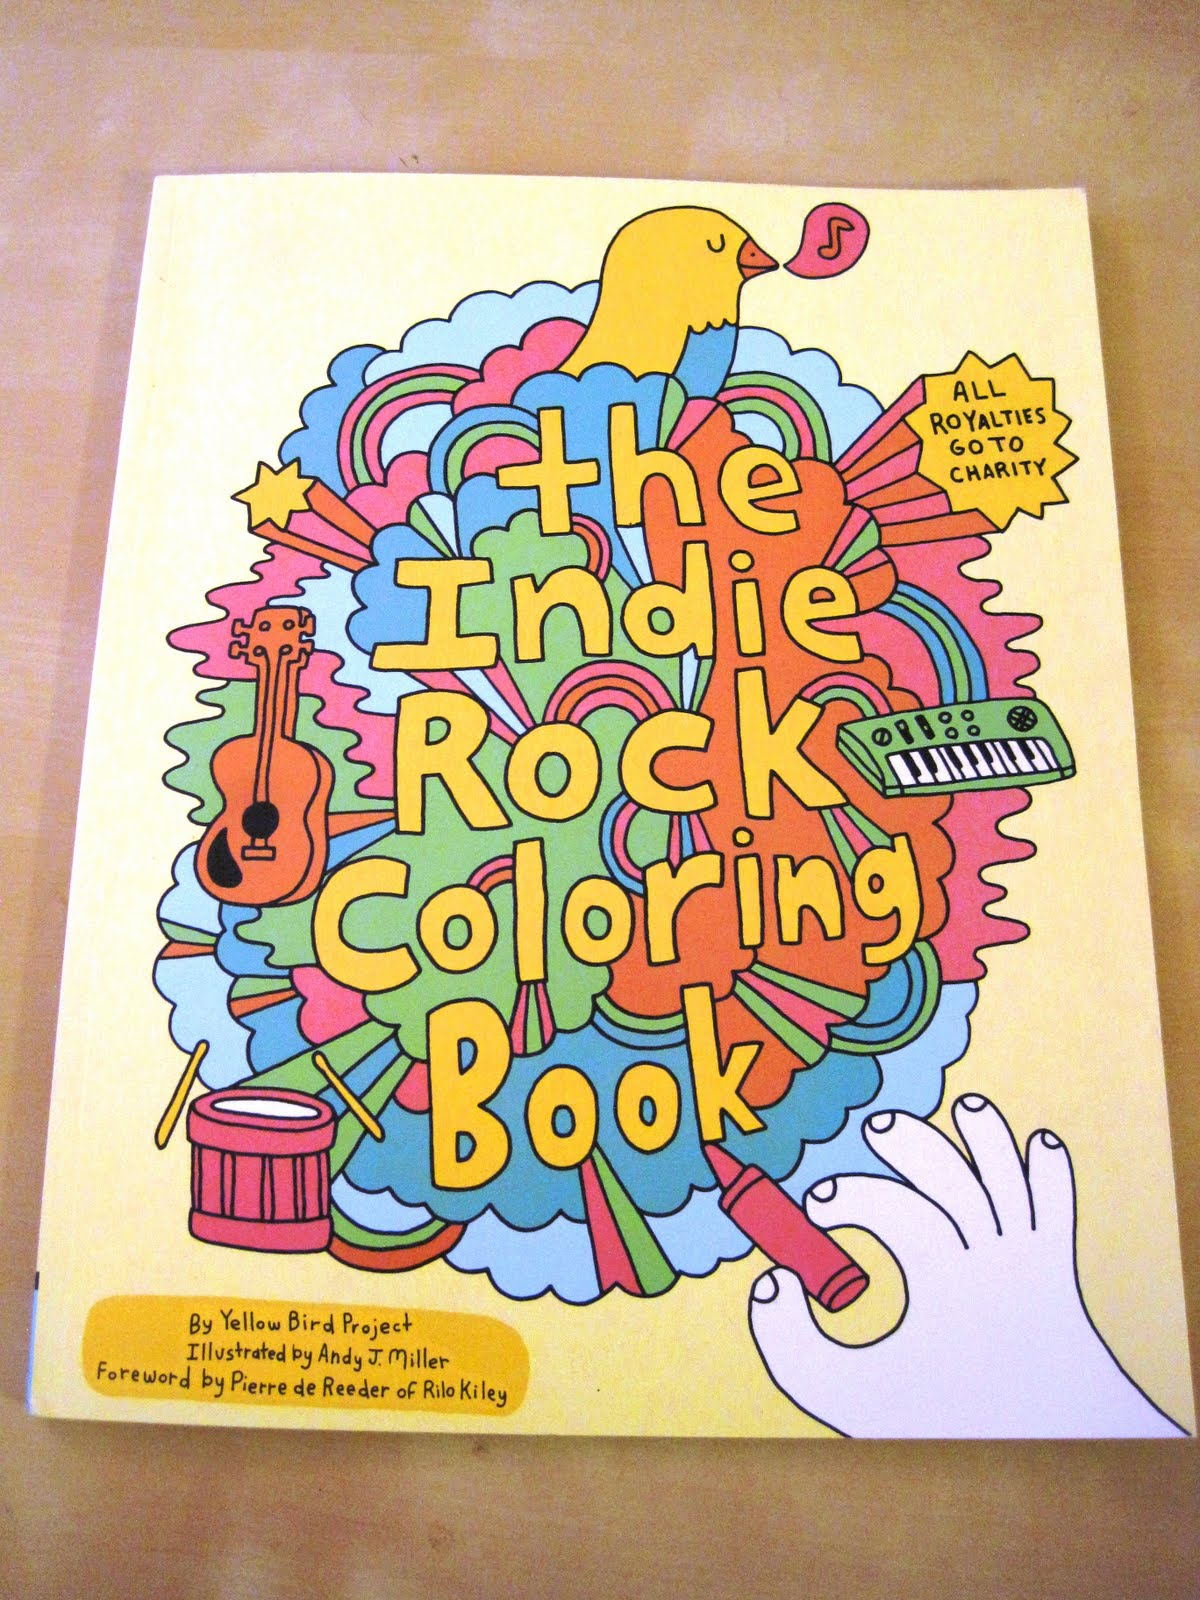 panda mum and an indie rock coloring book - The Indie Rock Coloring Book